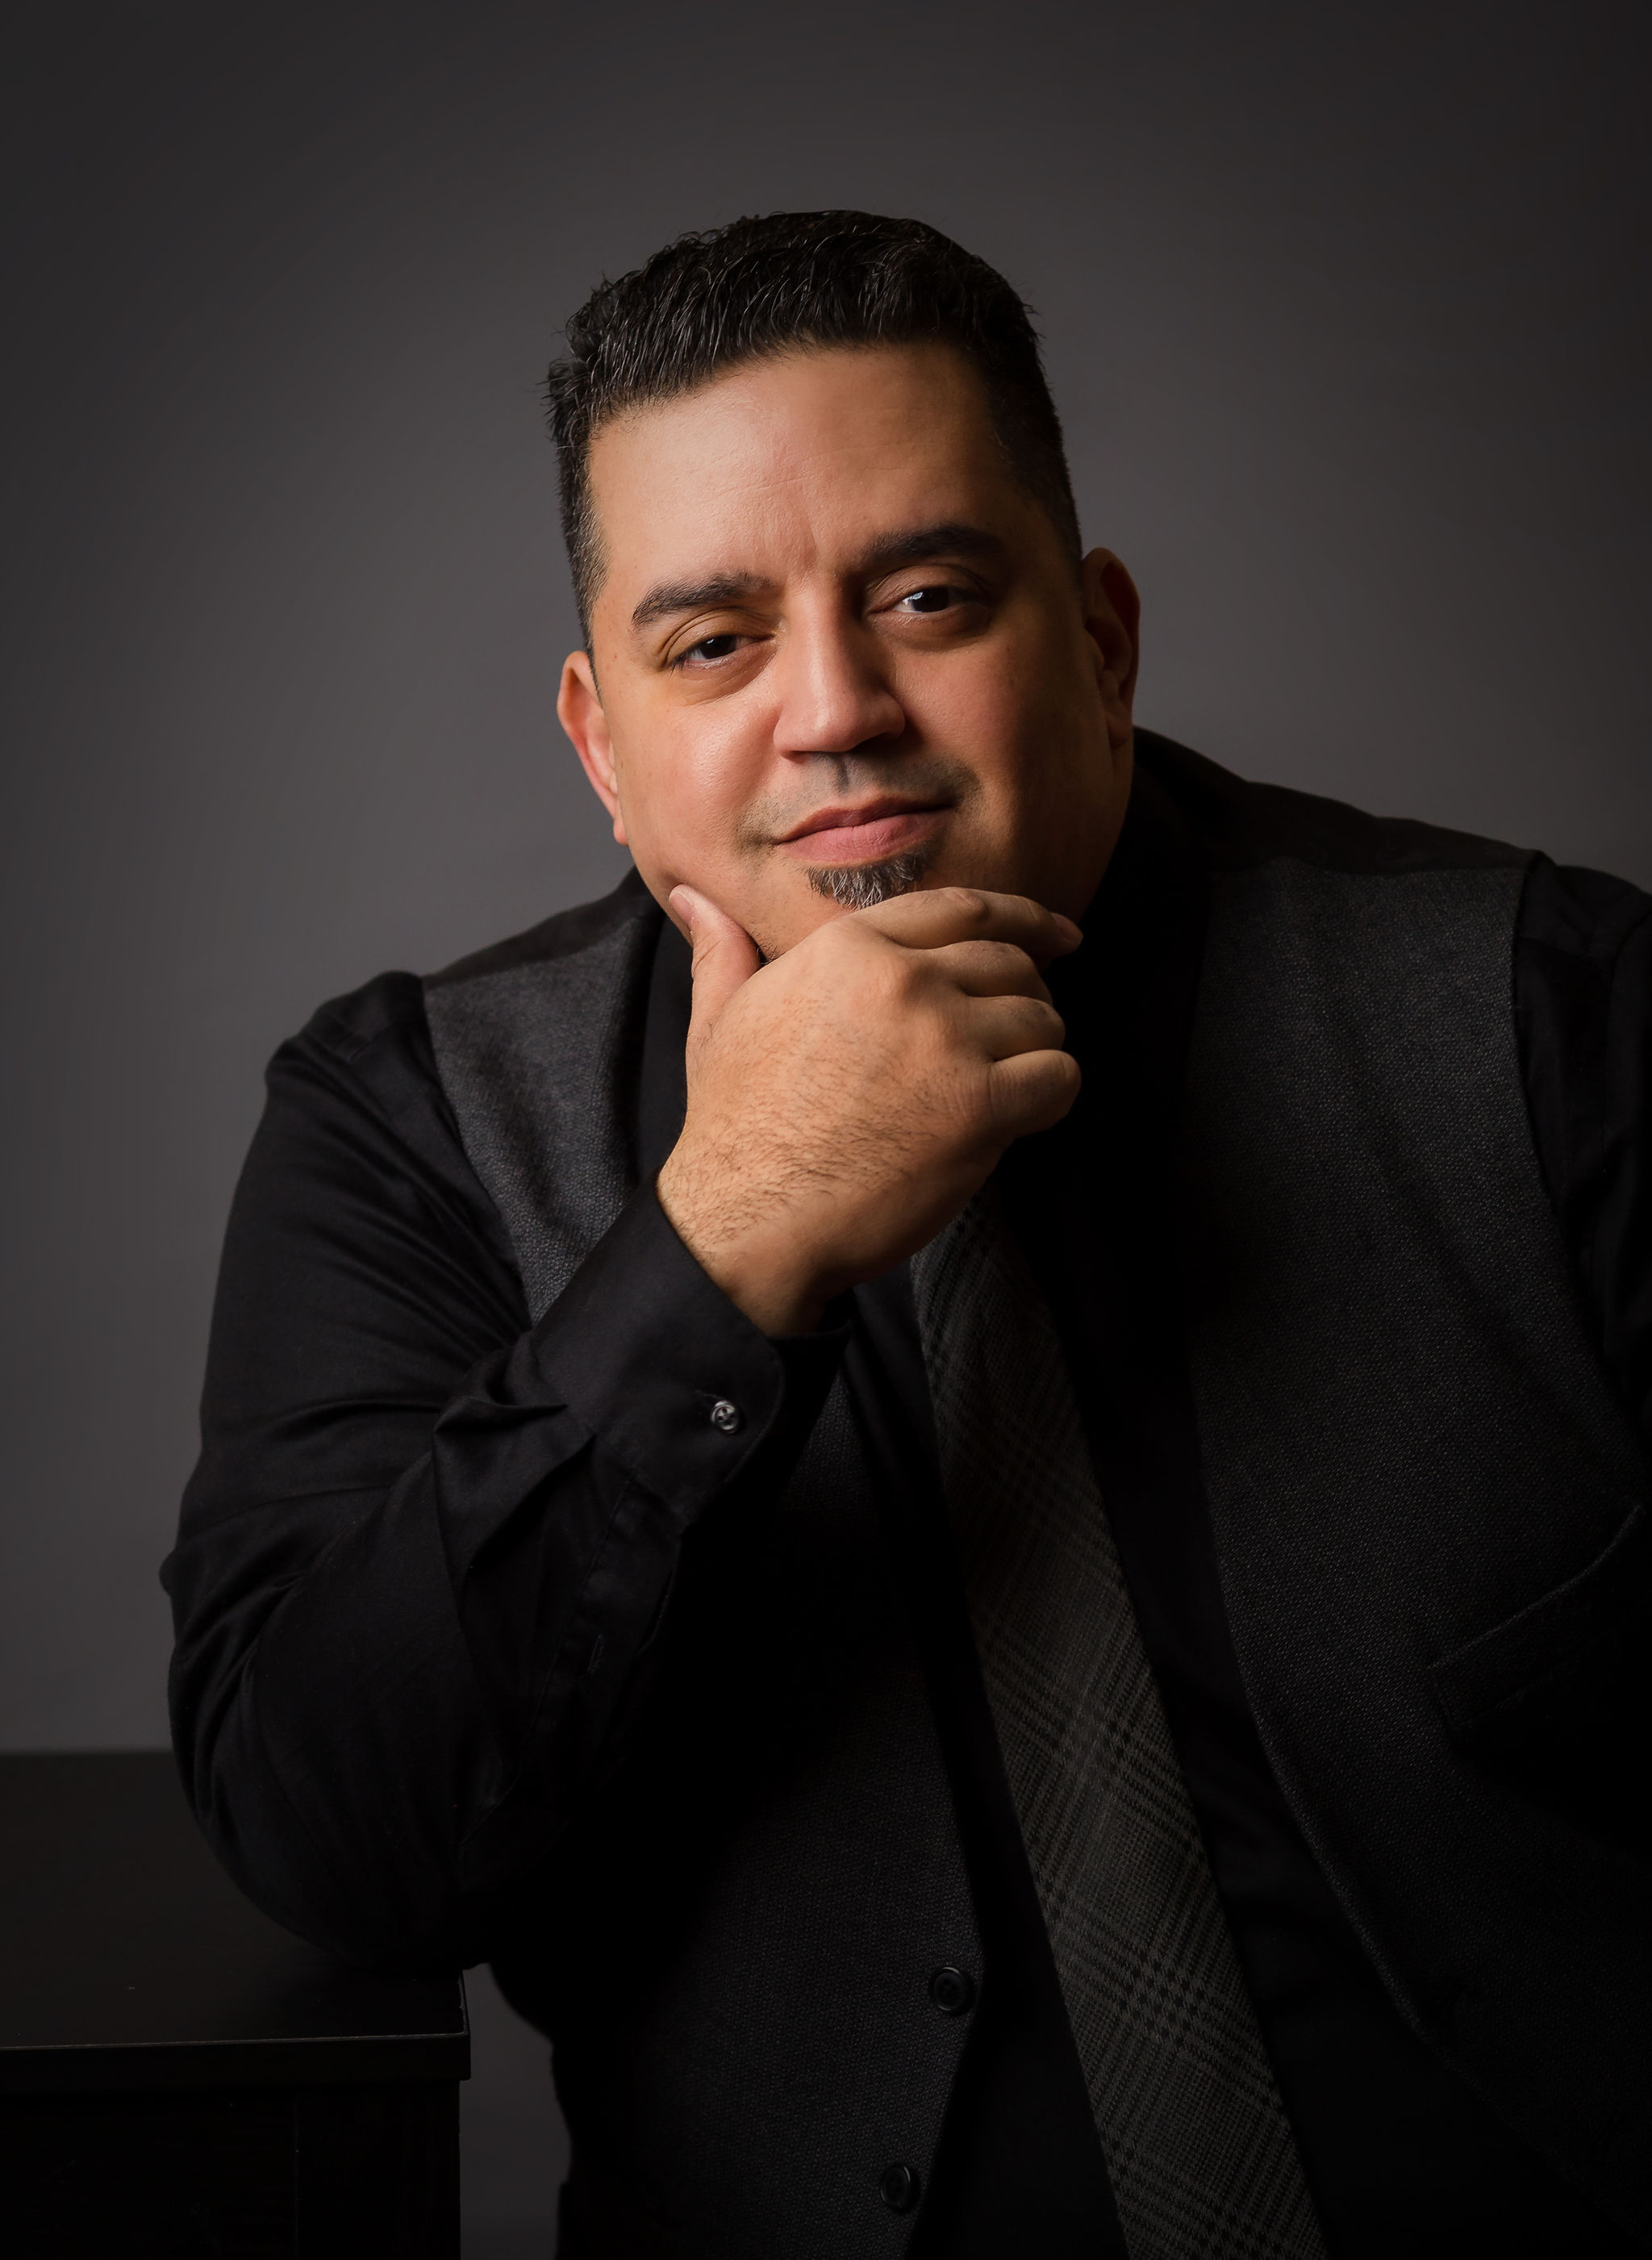 Alex Garcia - Raised in Allentown, PA, Alex brings passion and experience as an artist to the creation of beautiful images for both weddings and quinceañeras.